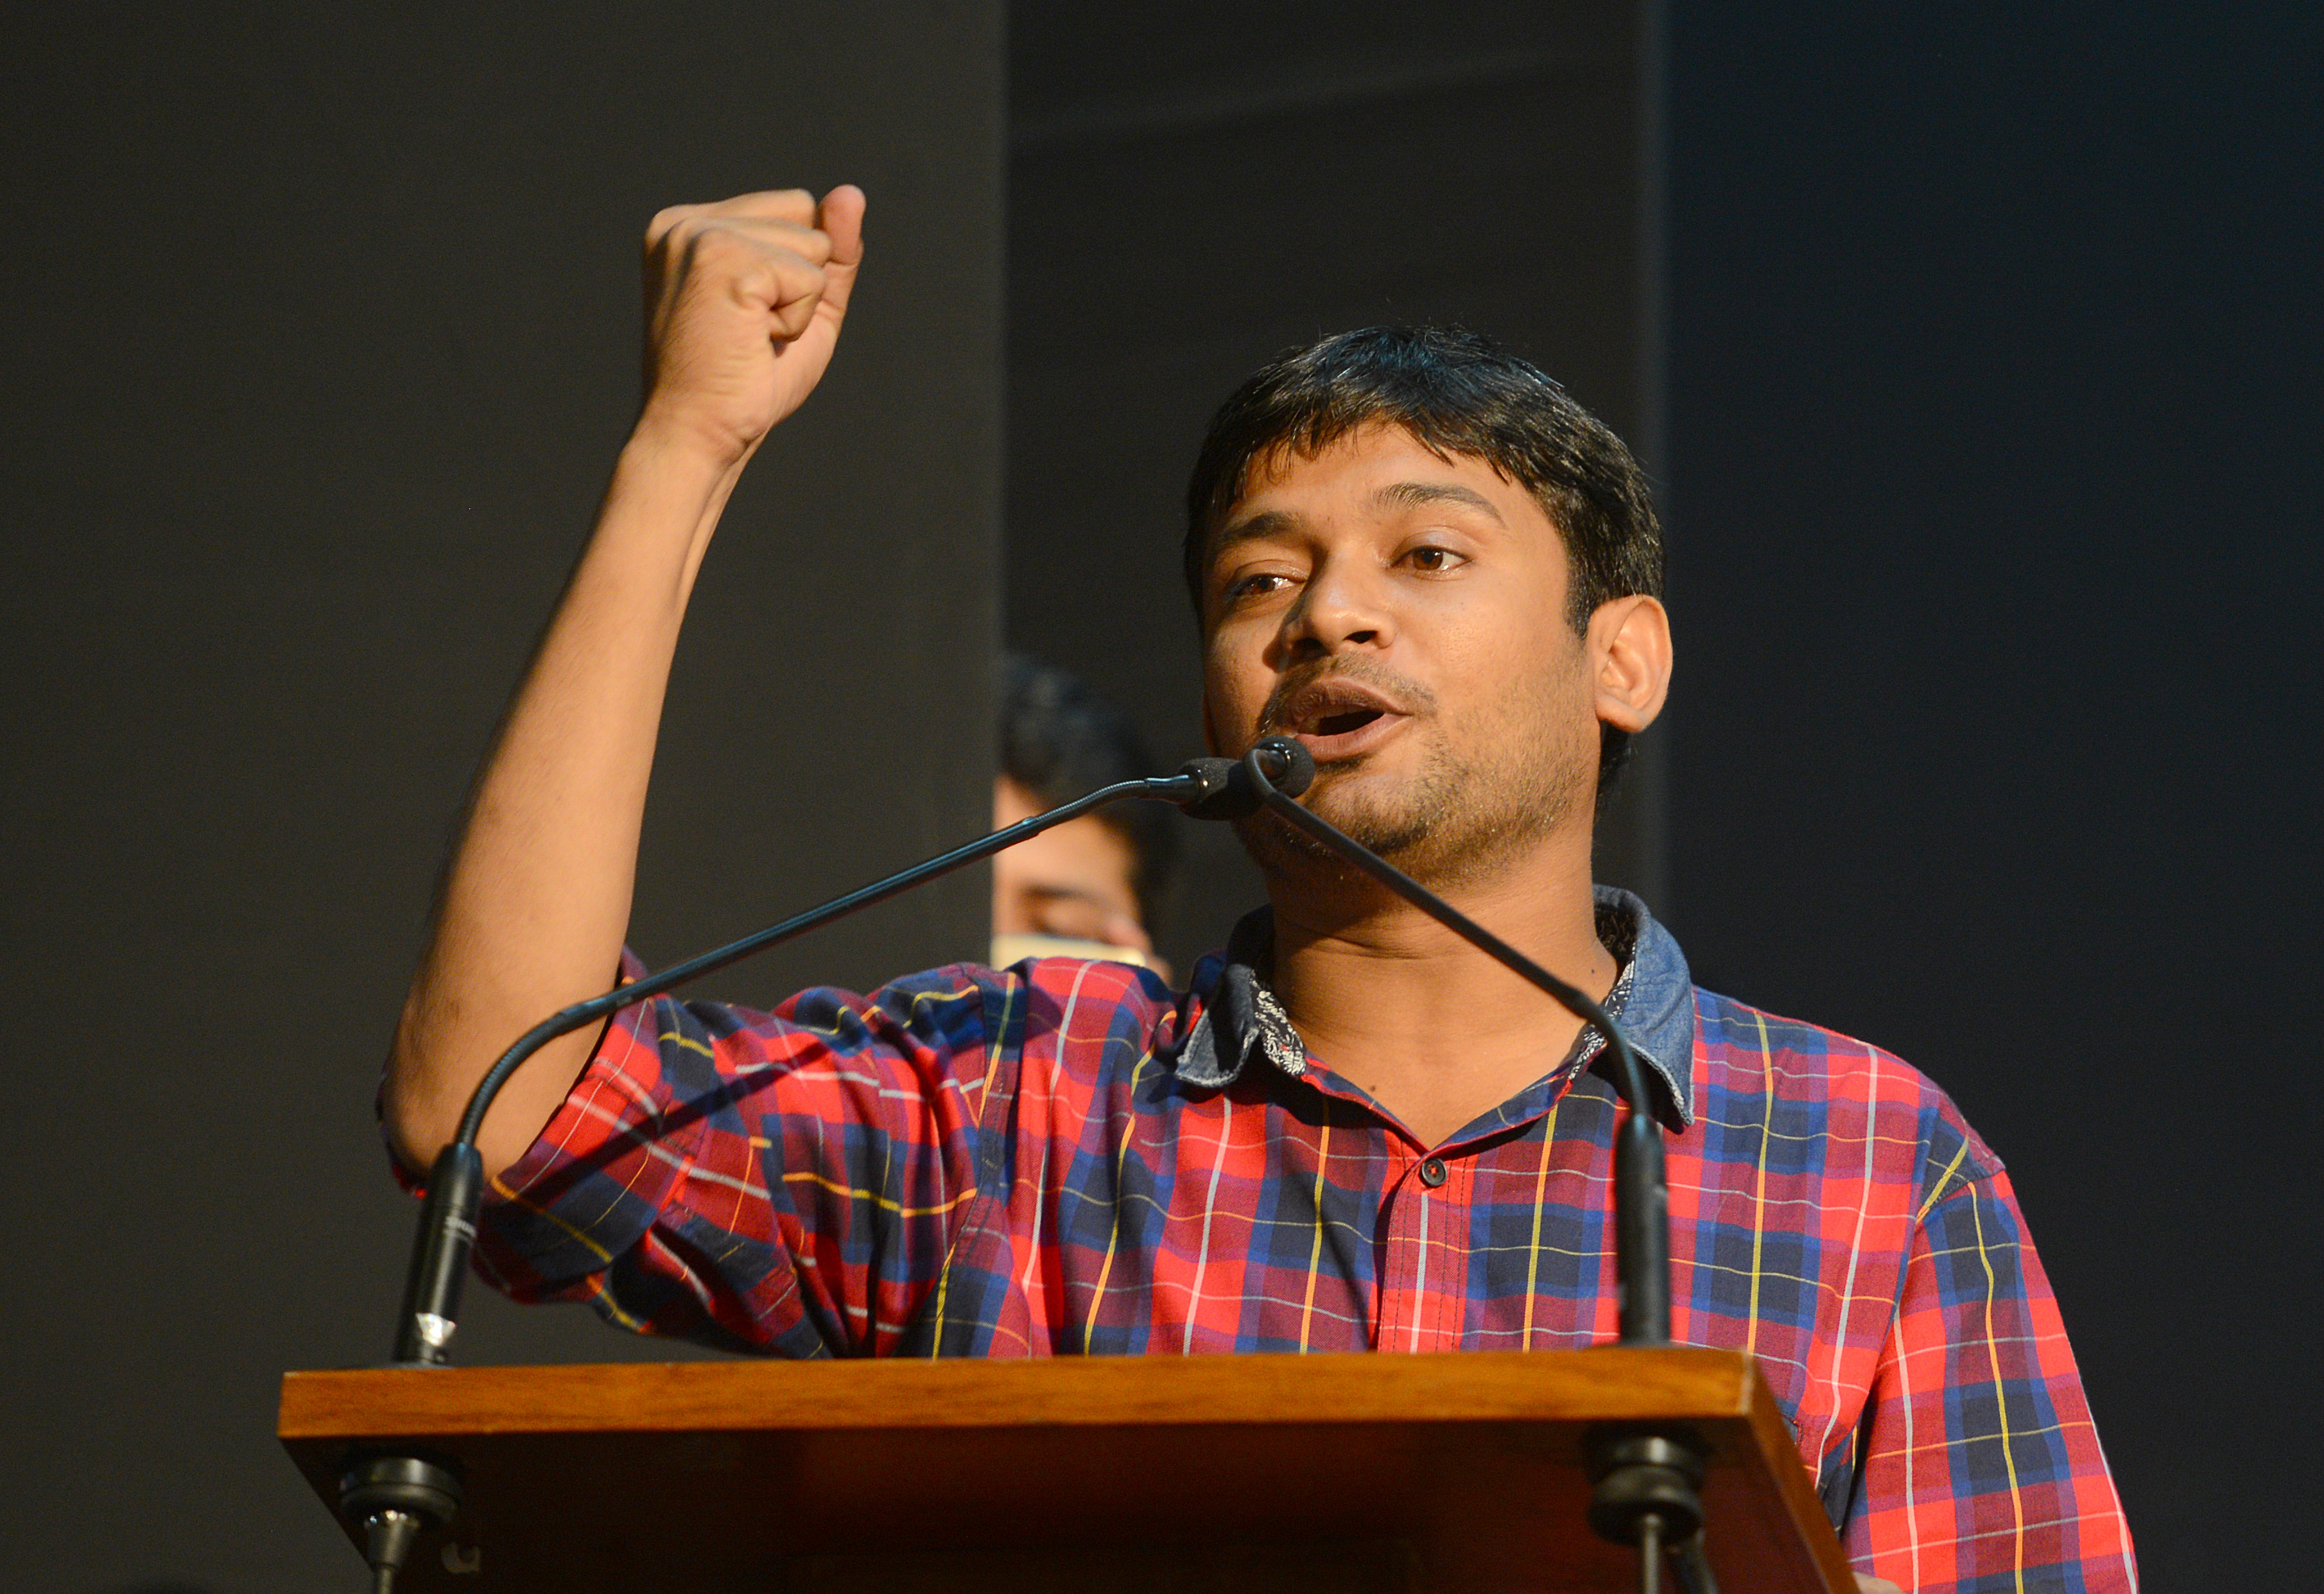 Kanhaiya Kumar's arrest in 2016 had triggered protests across the country, with Opposition parties slamming the police for